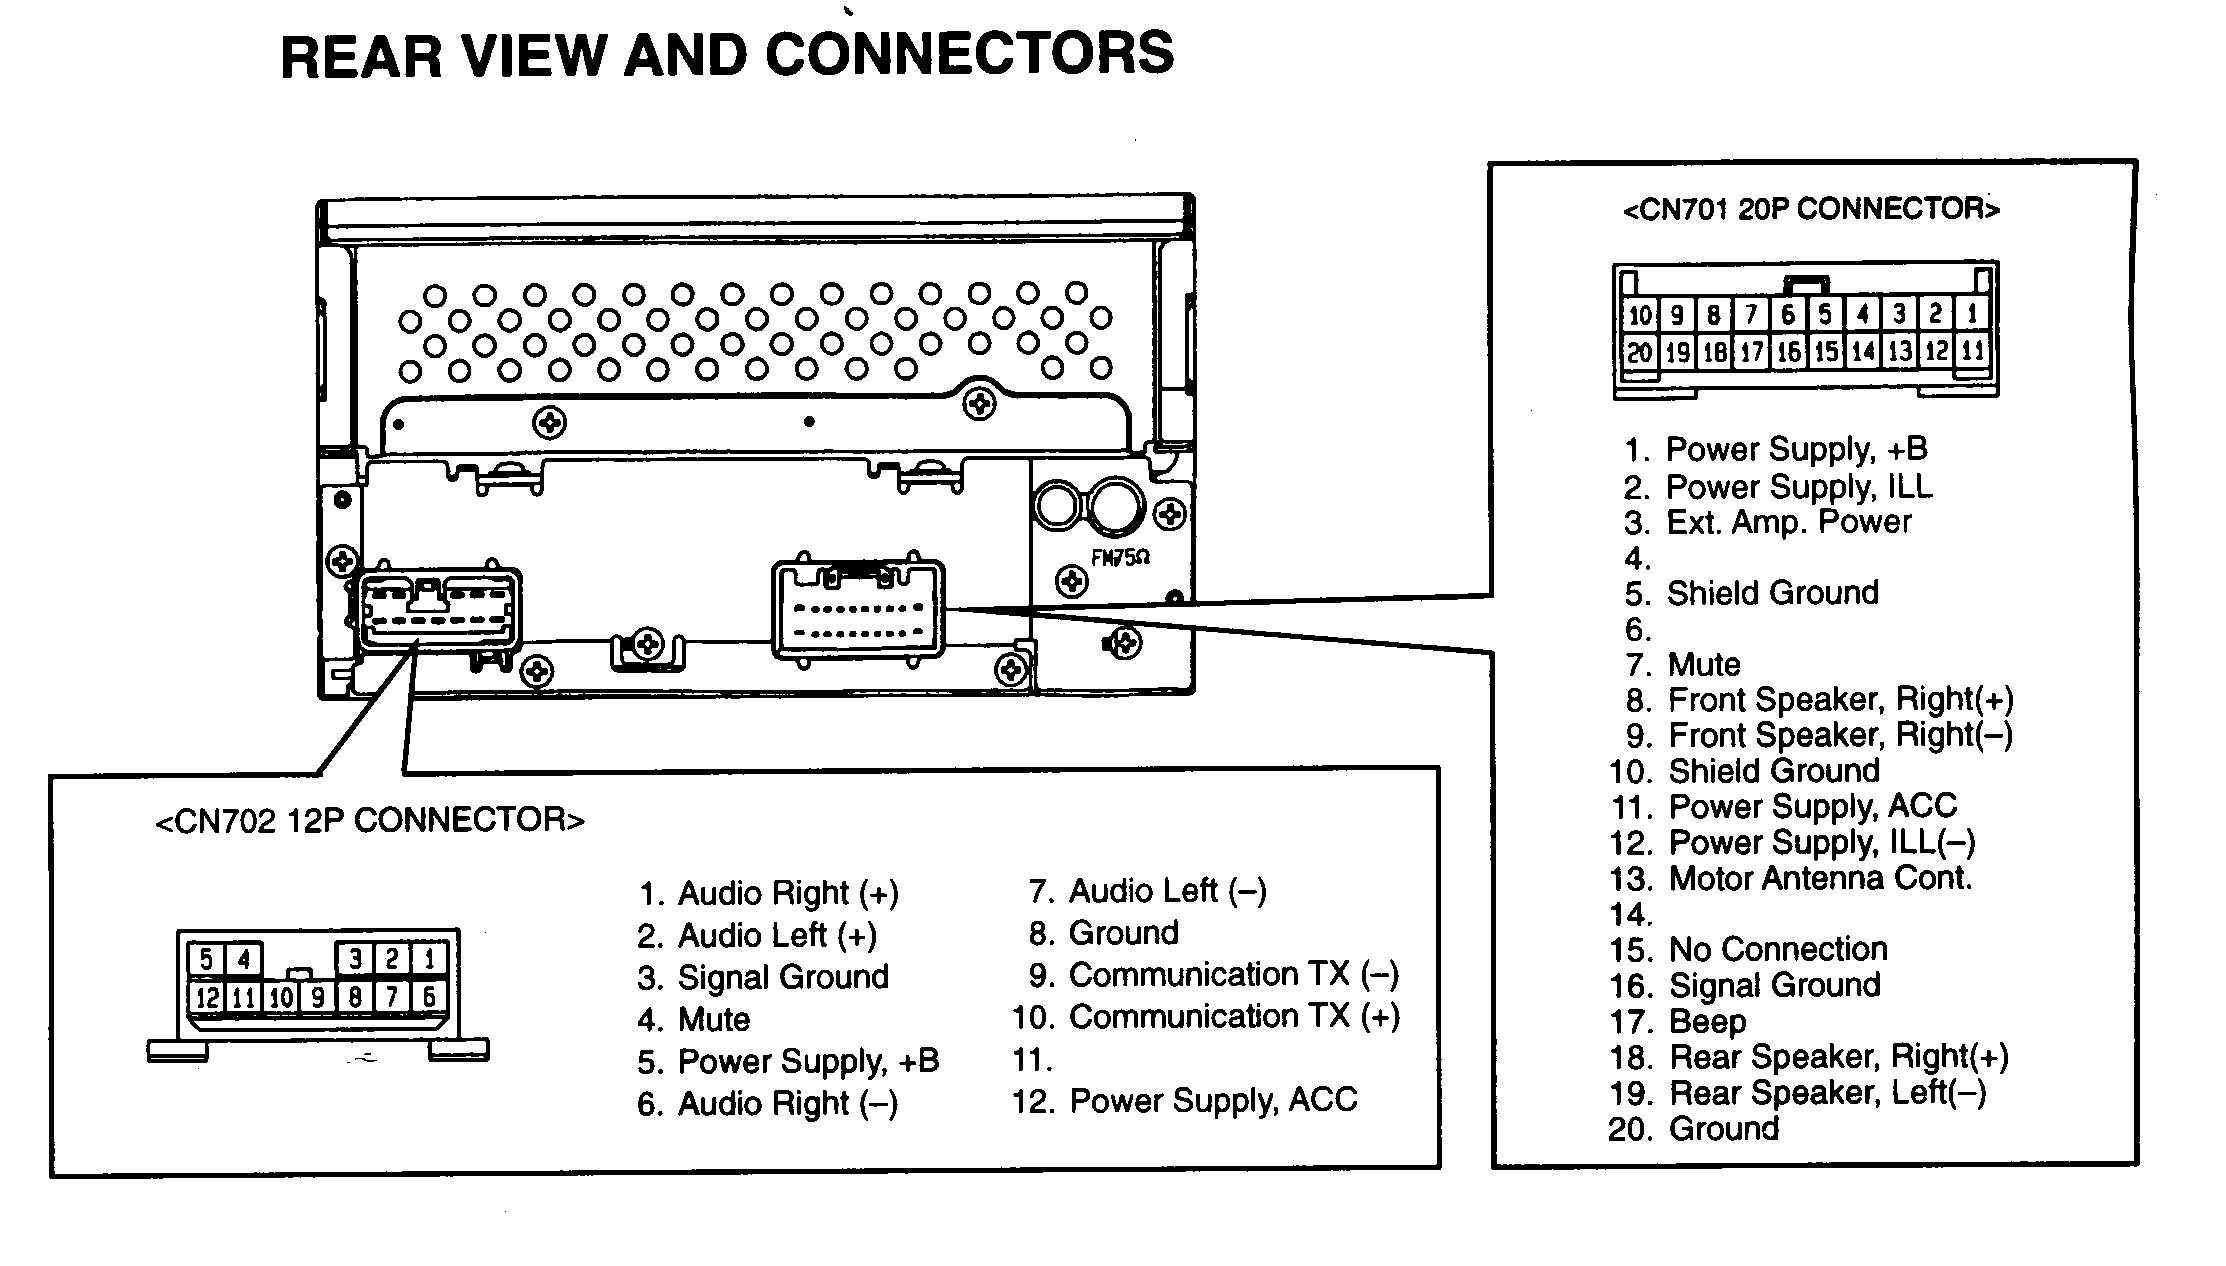 Factory Car Stereo Wiring Diagrams In 2021 Electrical Wiring Diagram Car Stereo Diagram